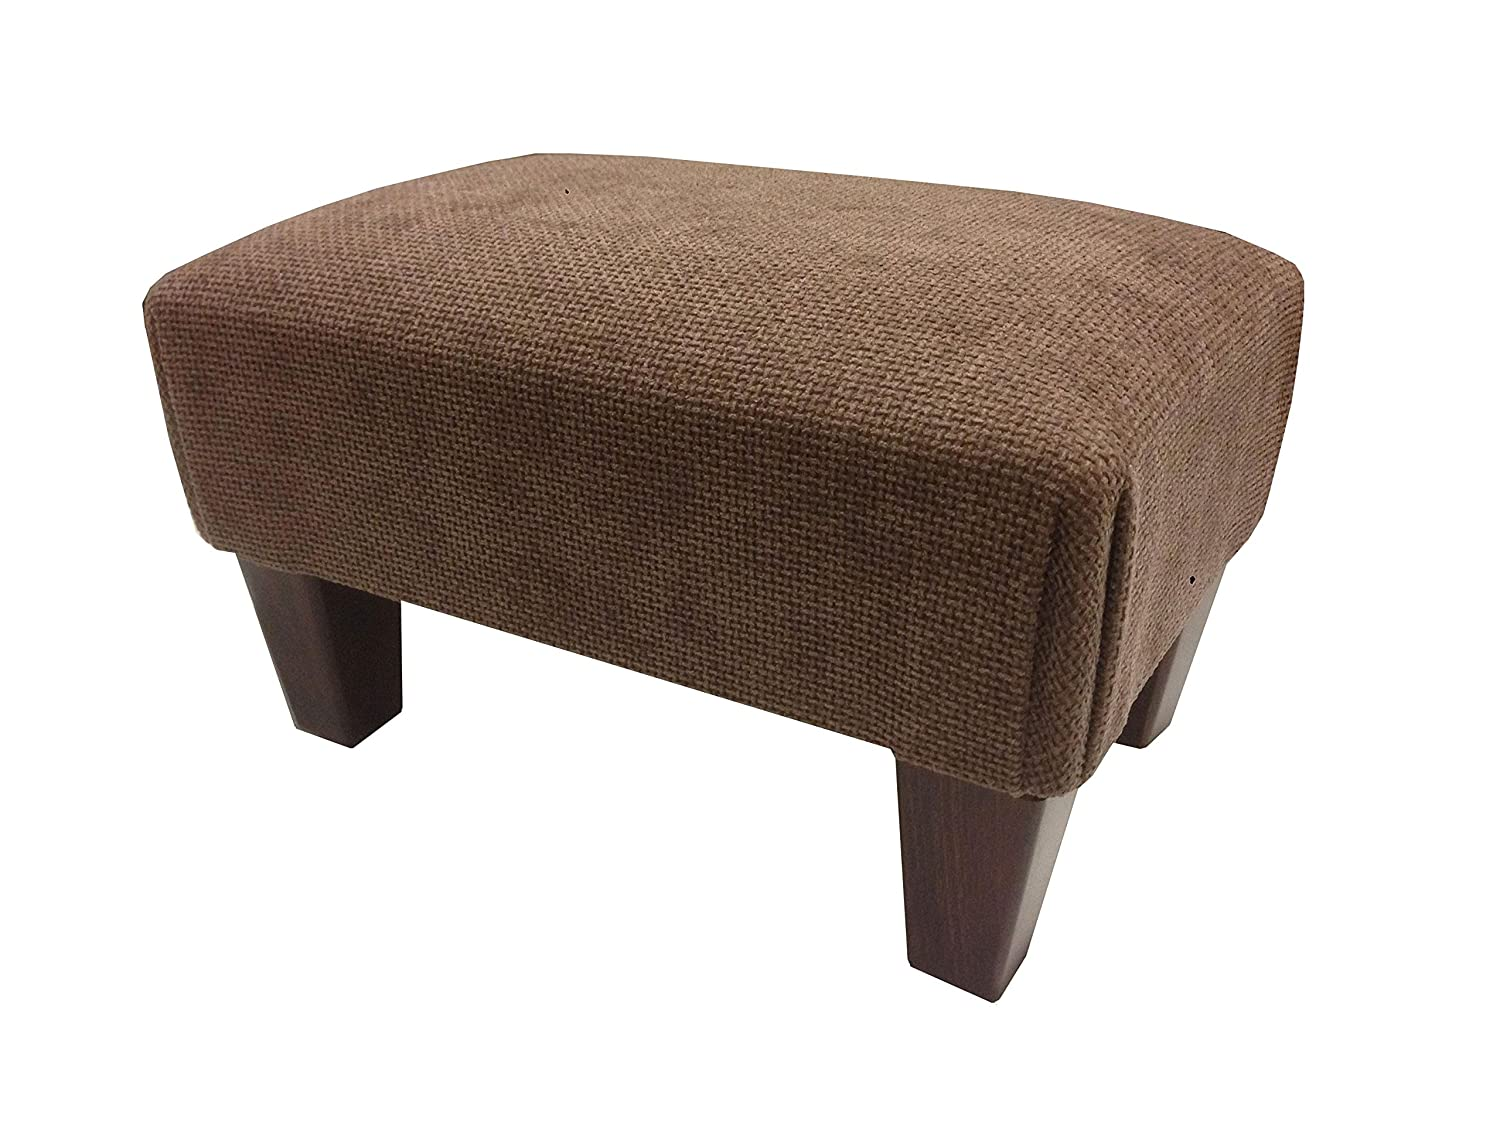 Luxury upholstered footstool in Hopsack brown chenille and mahogany wooden legs...If you see any other fabric you like in my other items including jumbo cords and chenilles please ask as we can make this foot stool pouffe in most fabrics. j&m furnishings